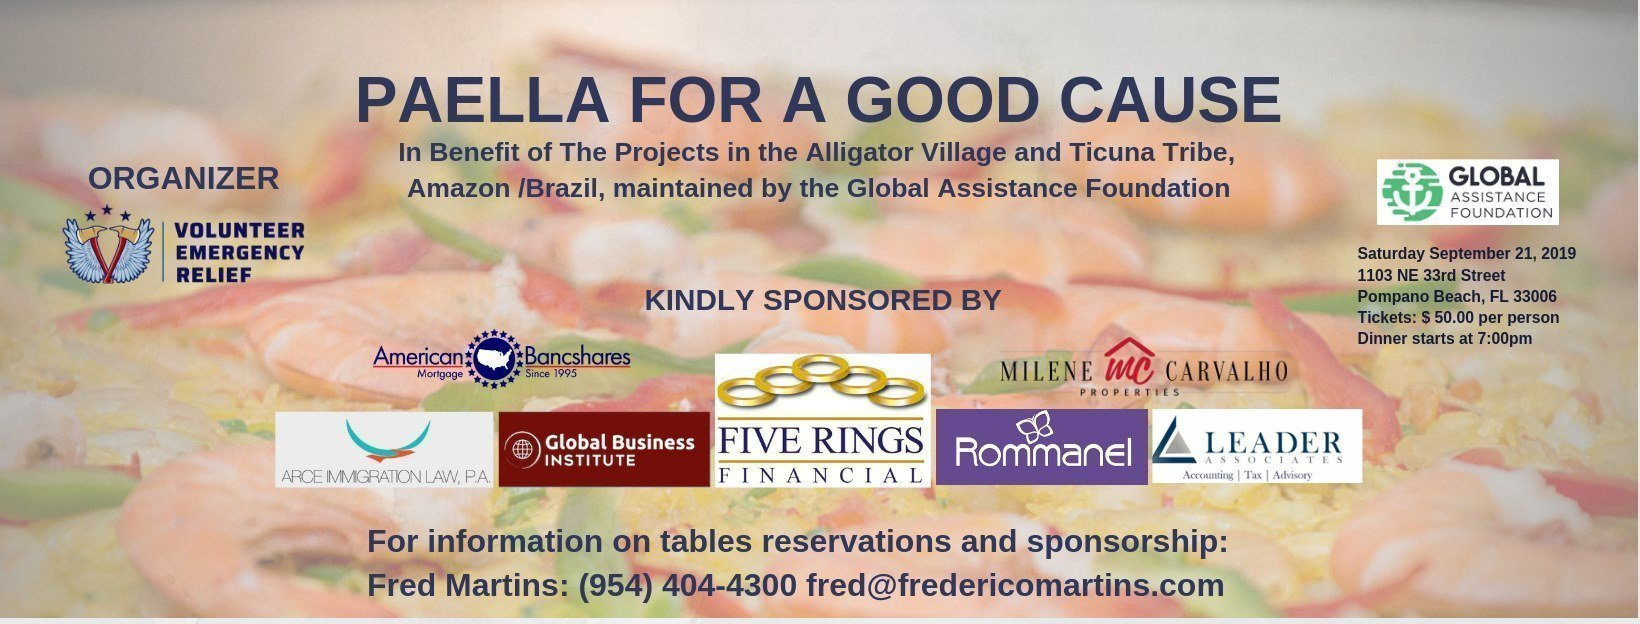 Paella for a Good Cause - In Benefit of The Ticuna Tribe Brazil